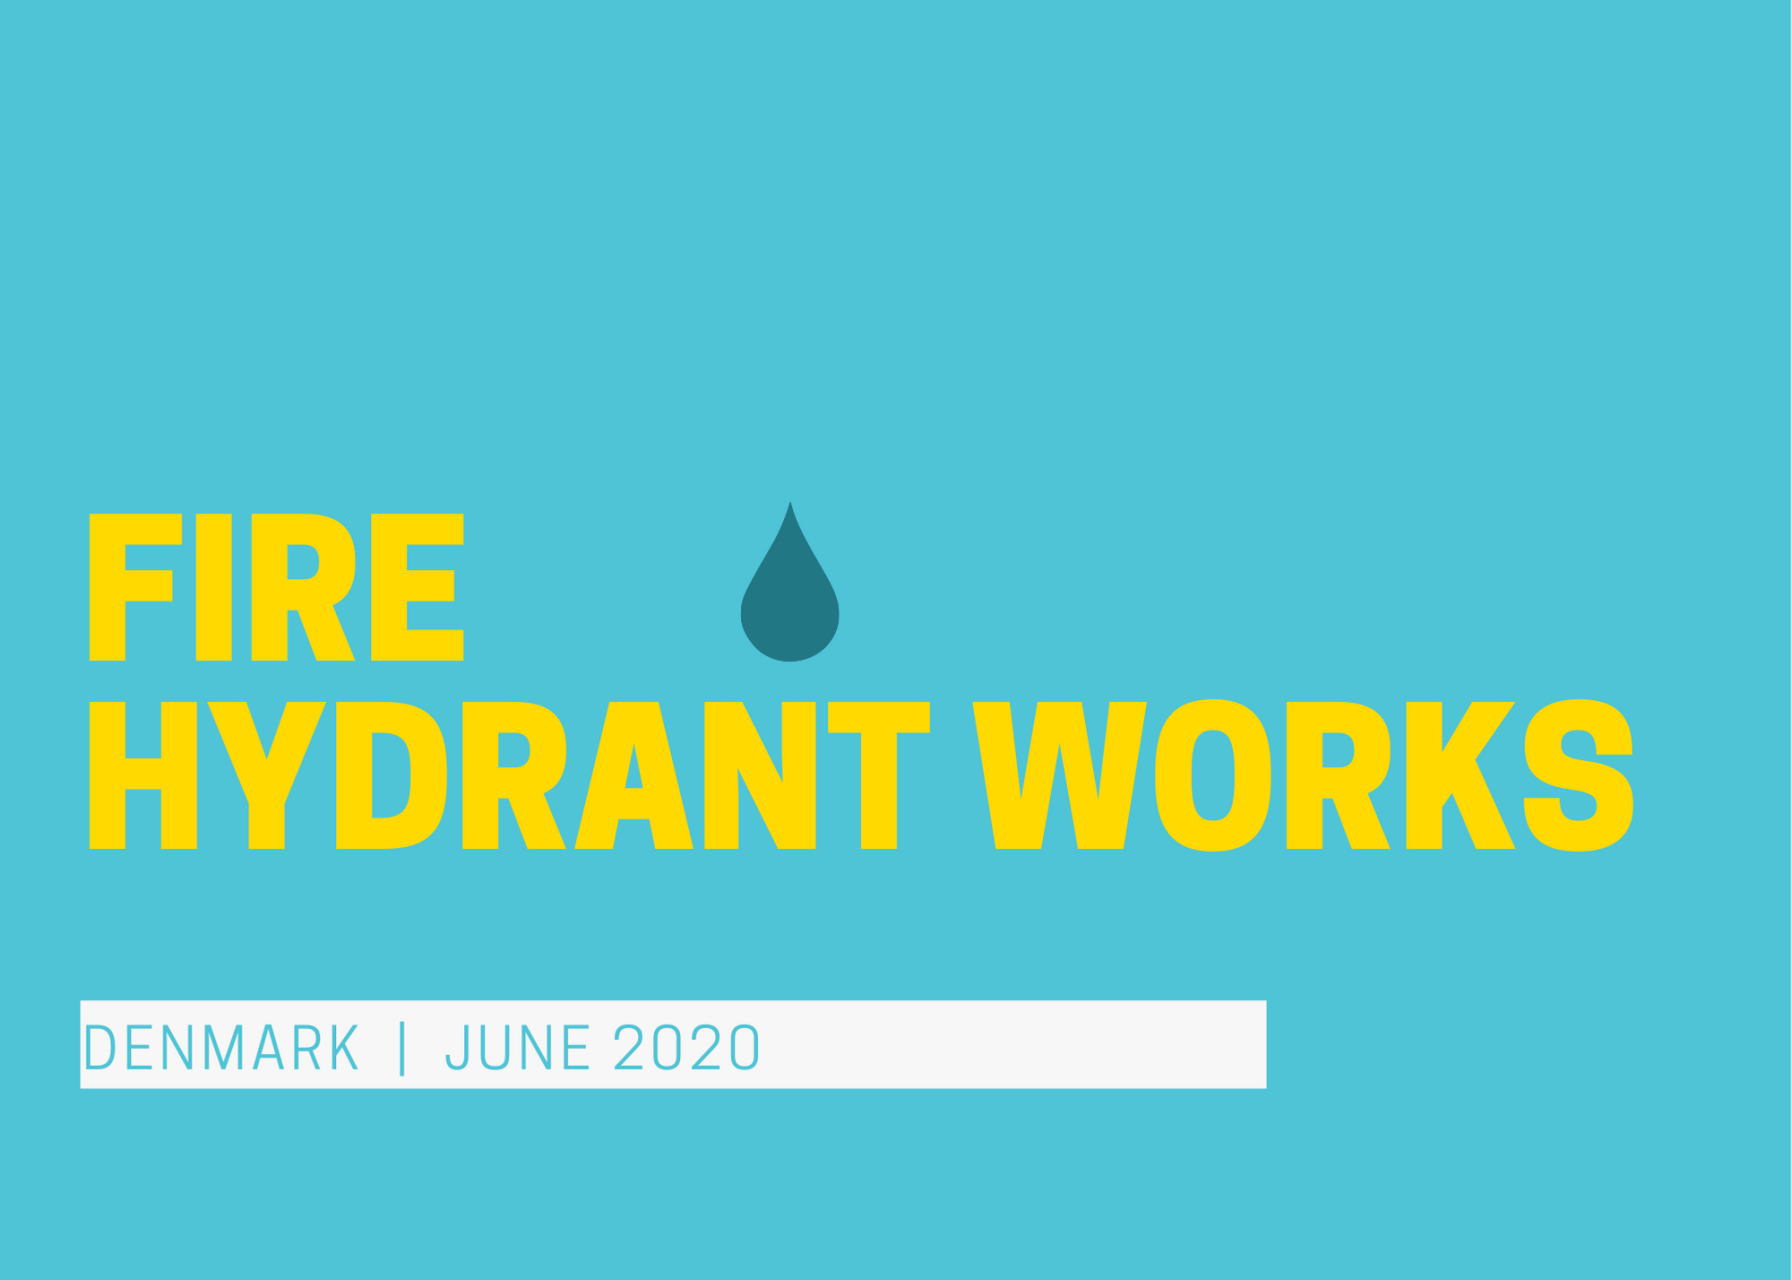 Water Corporation works - replacement of fire hydrants in Denmark